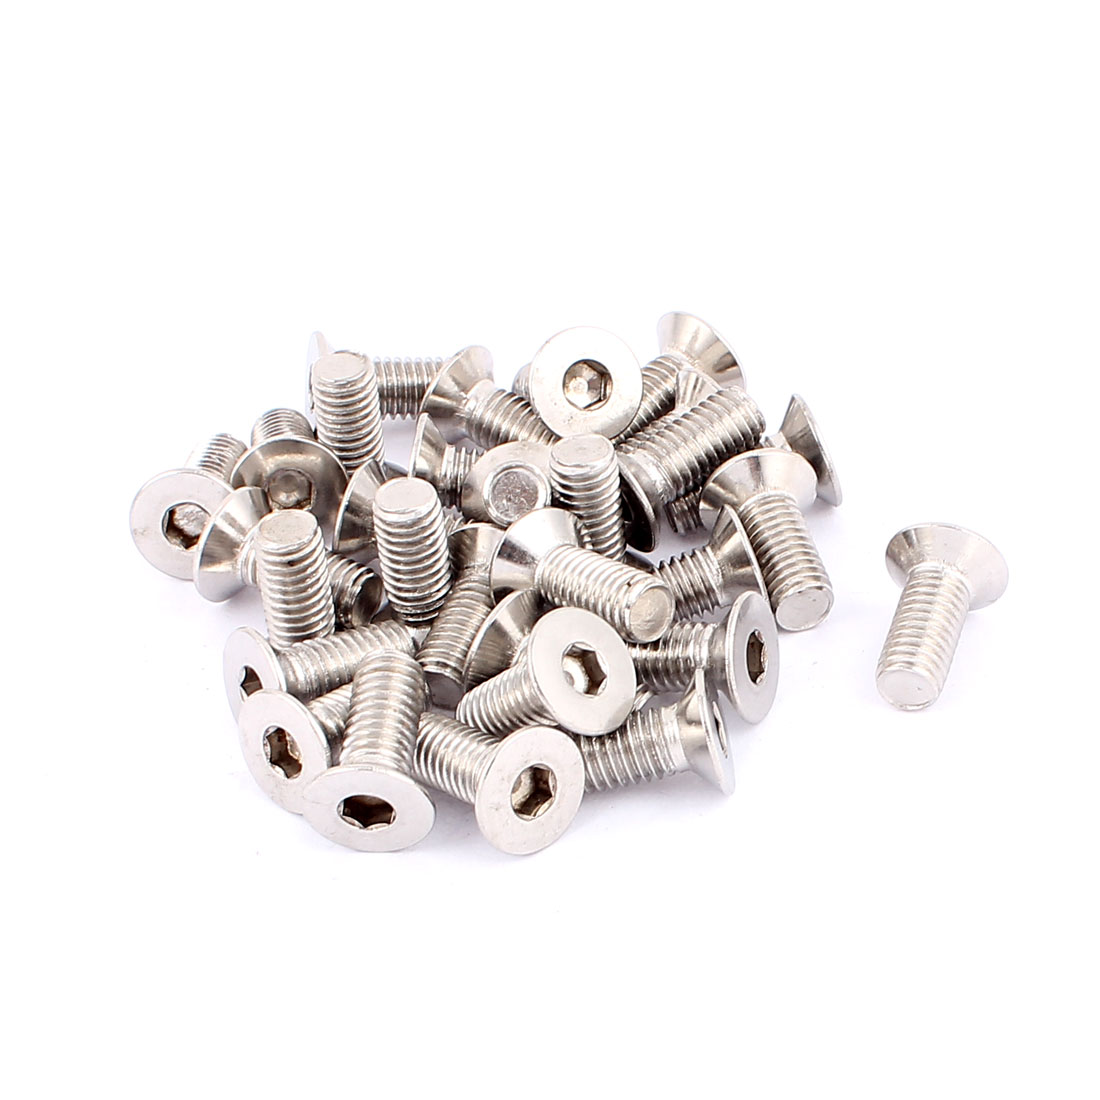 30 Pcs Metric M8 Stainless Steel Countersunk Flat Head Hex Socket Screw Bolt